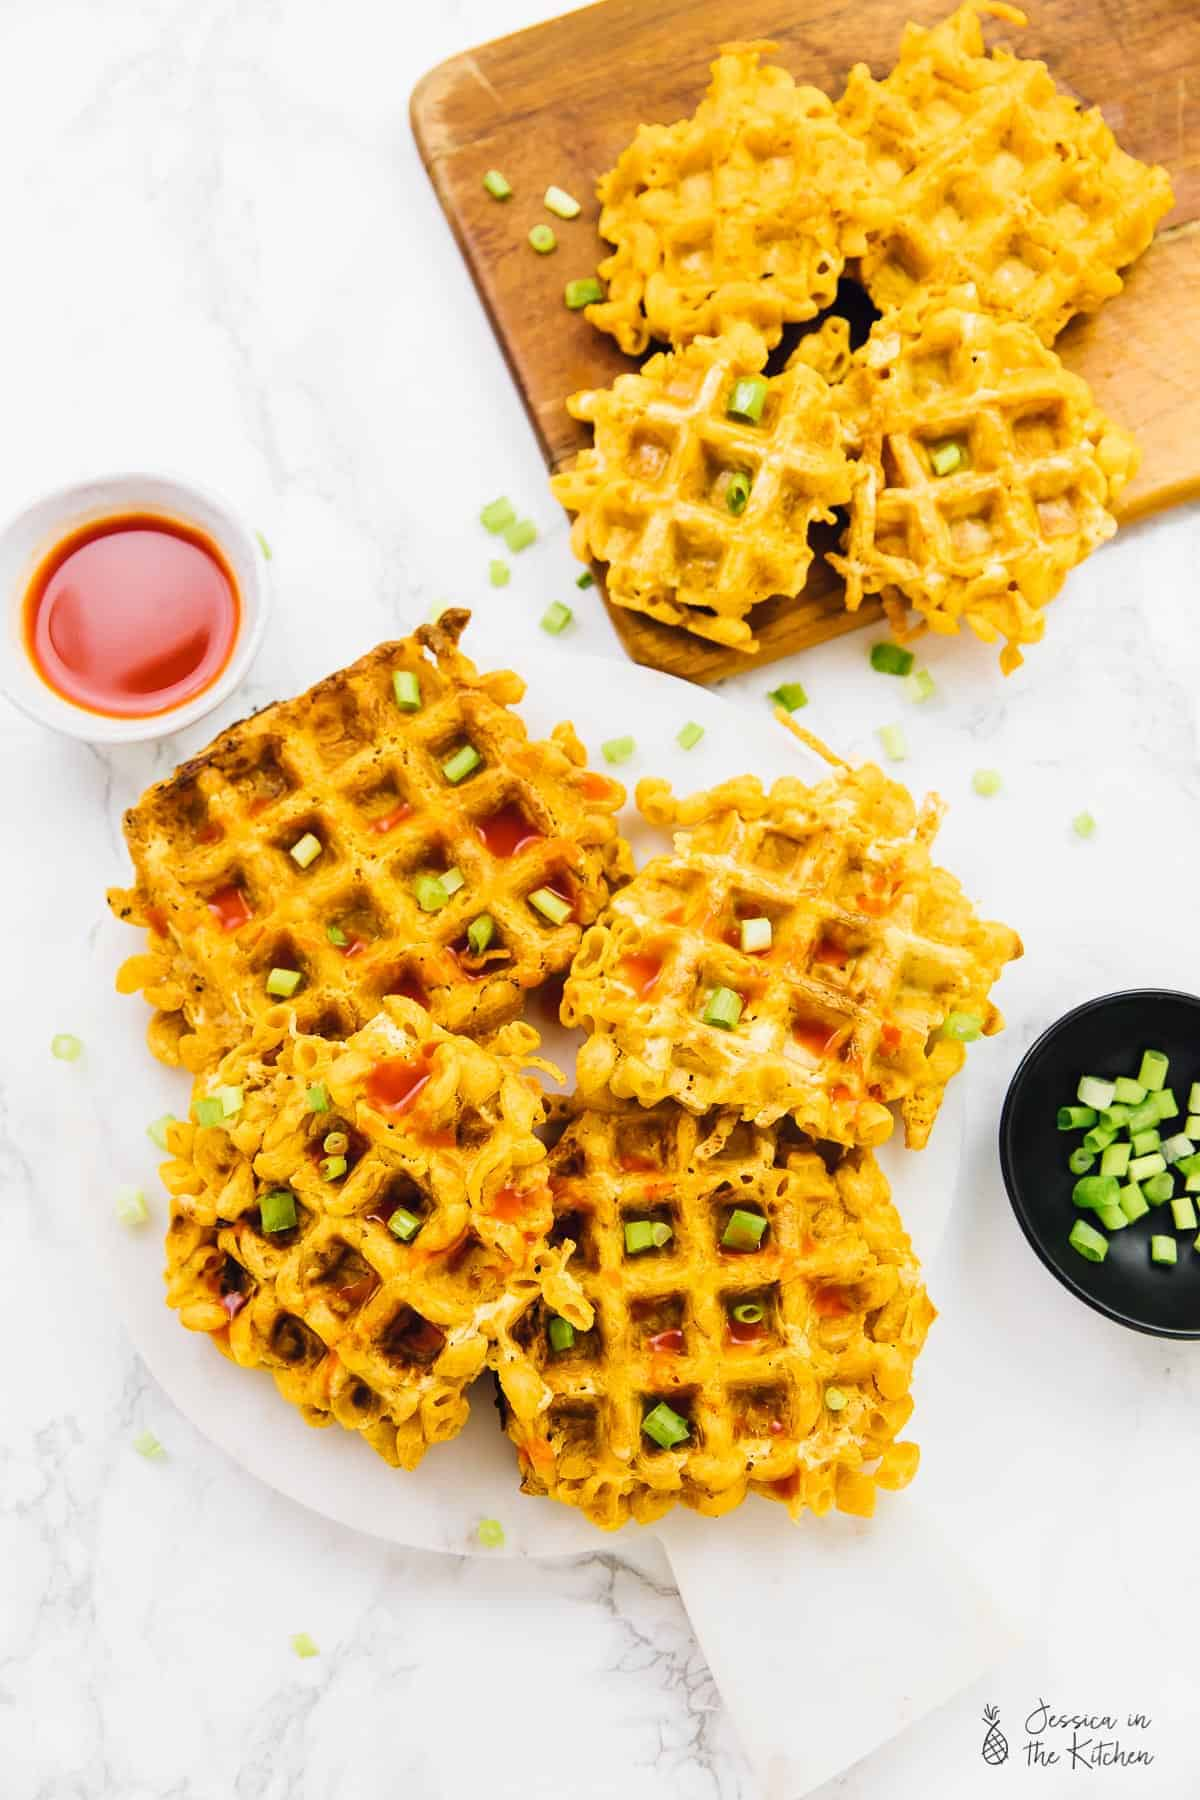 These Crispy Mac and Cheeze Waffles are the perfect indulgent side dish! Two ingredients, and you get crisp on the outside, and soft cheesy Mac and cheese on the inside of these divine waffles! via https://jessicainthekitchen.com